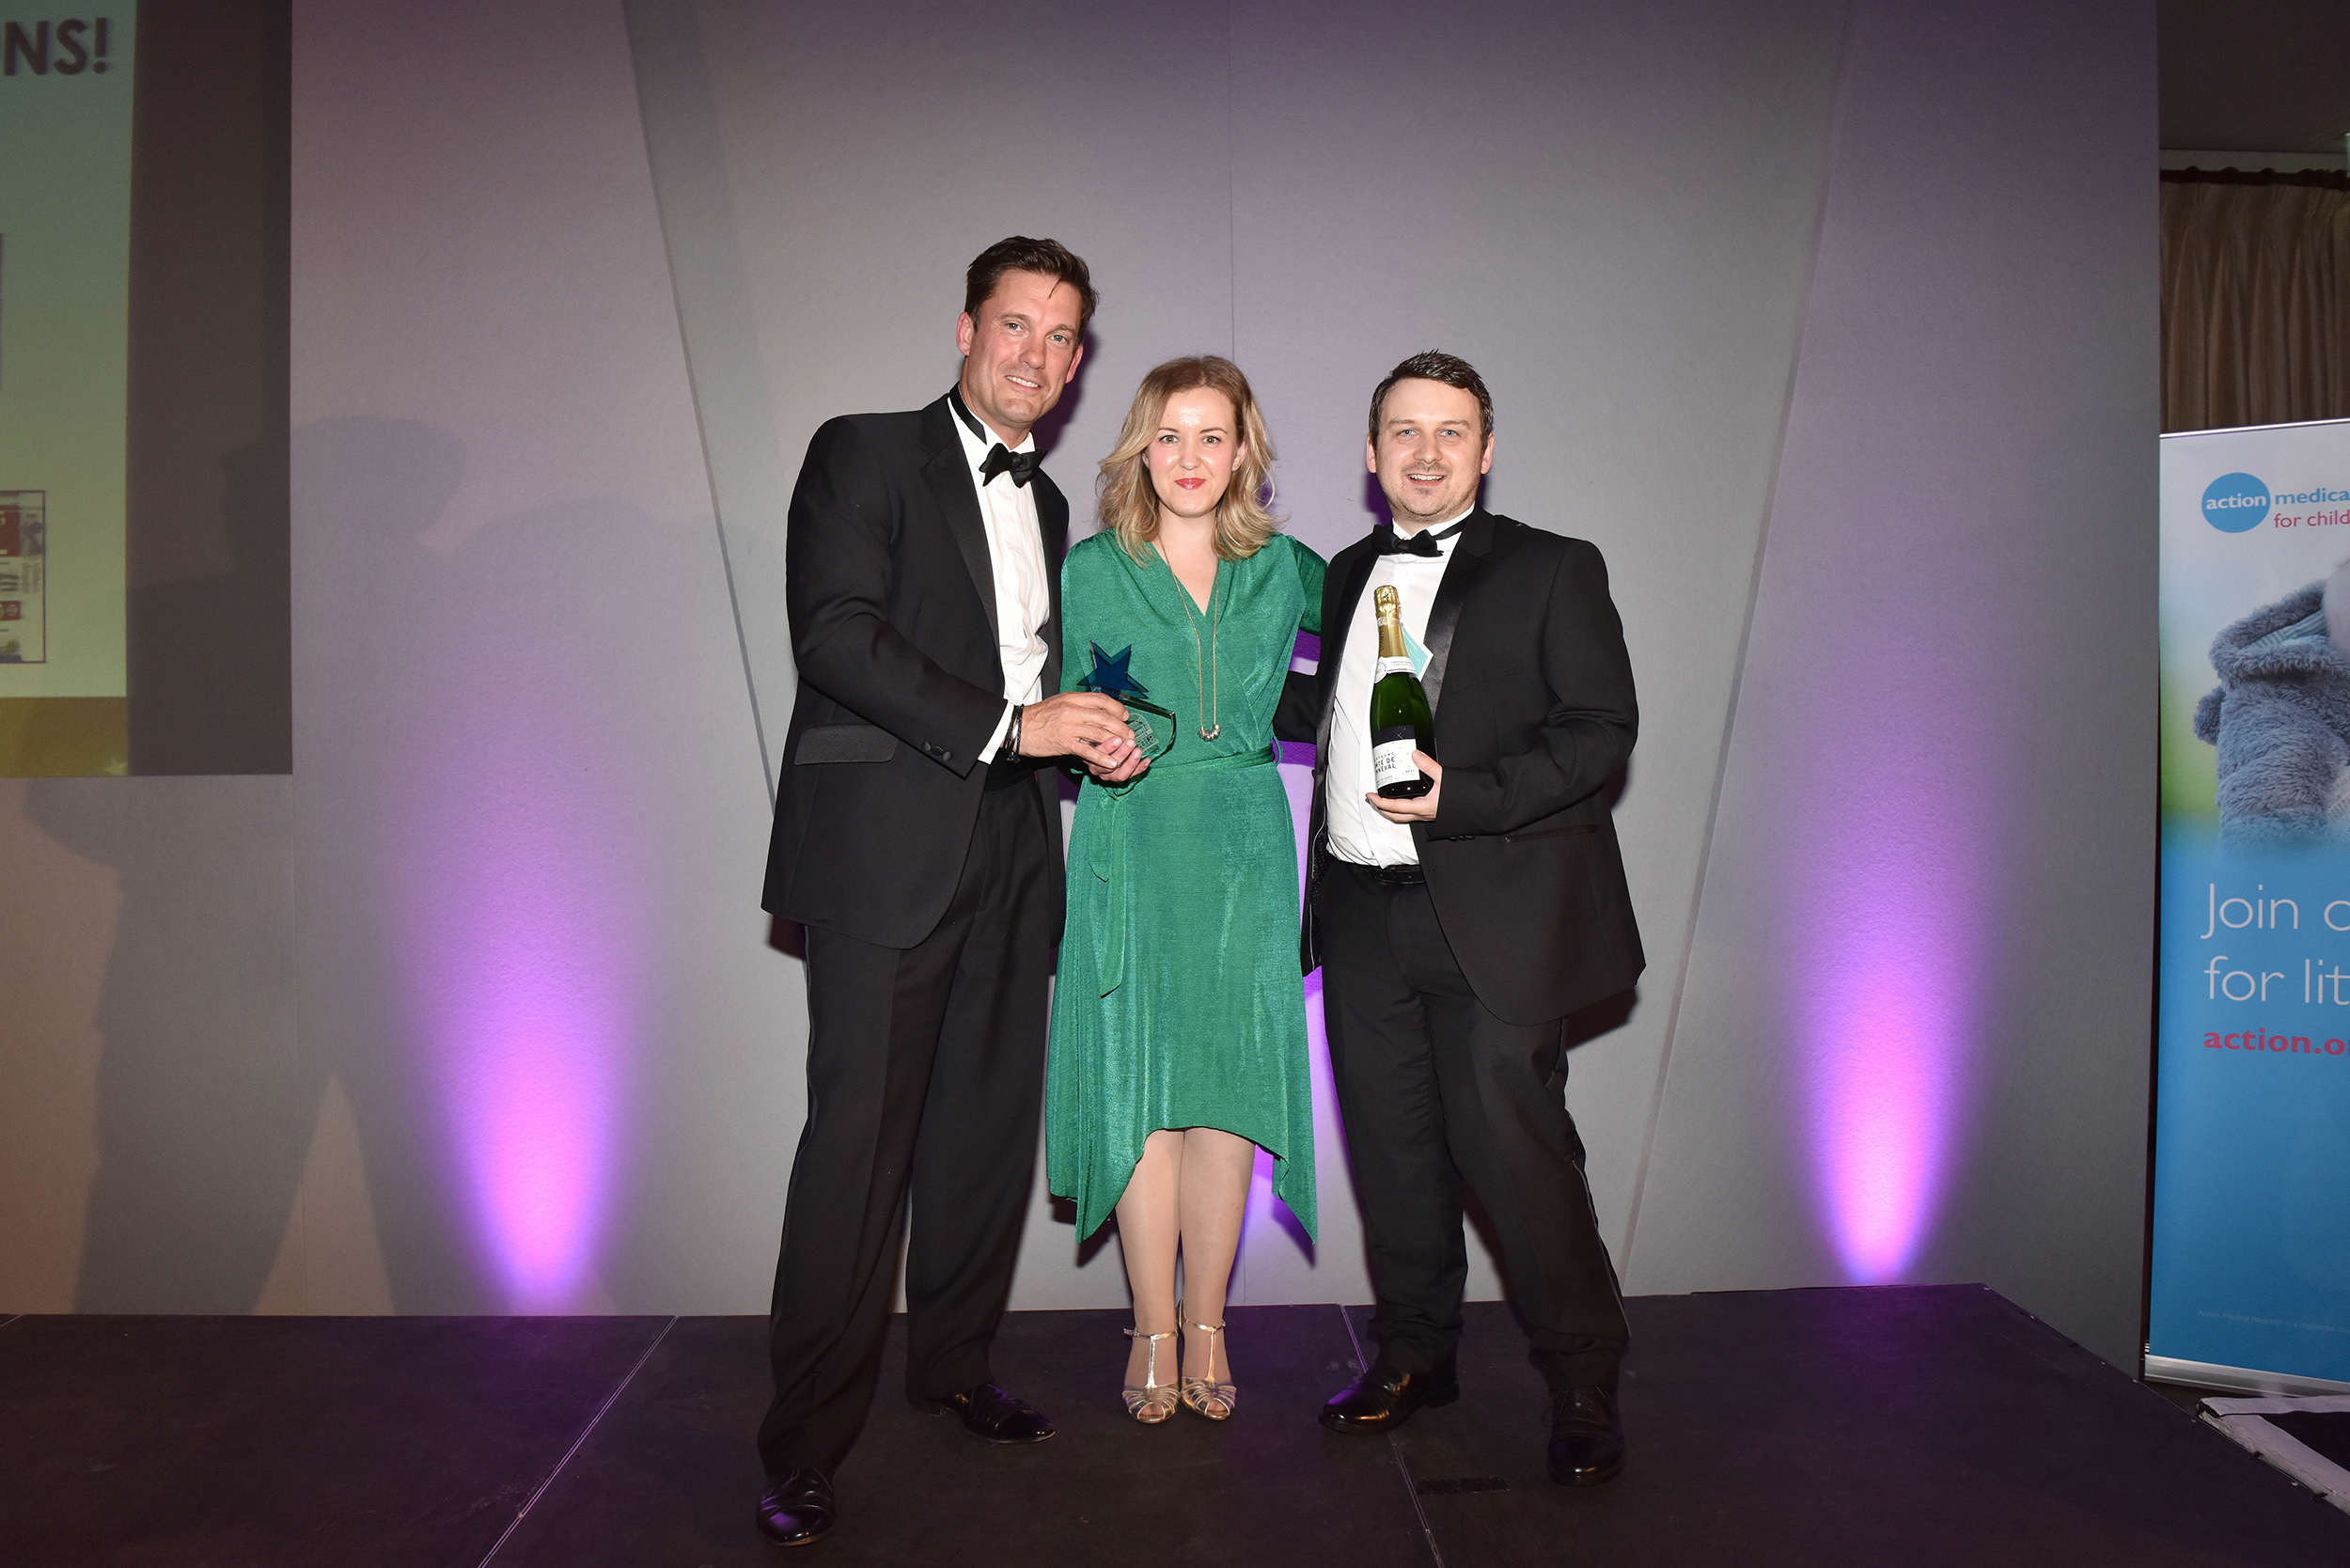 ProCook wins the Direct Commerce Award 2018